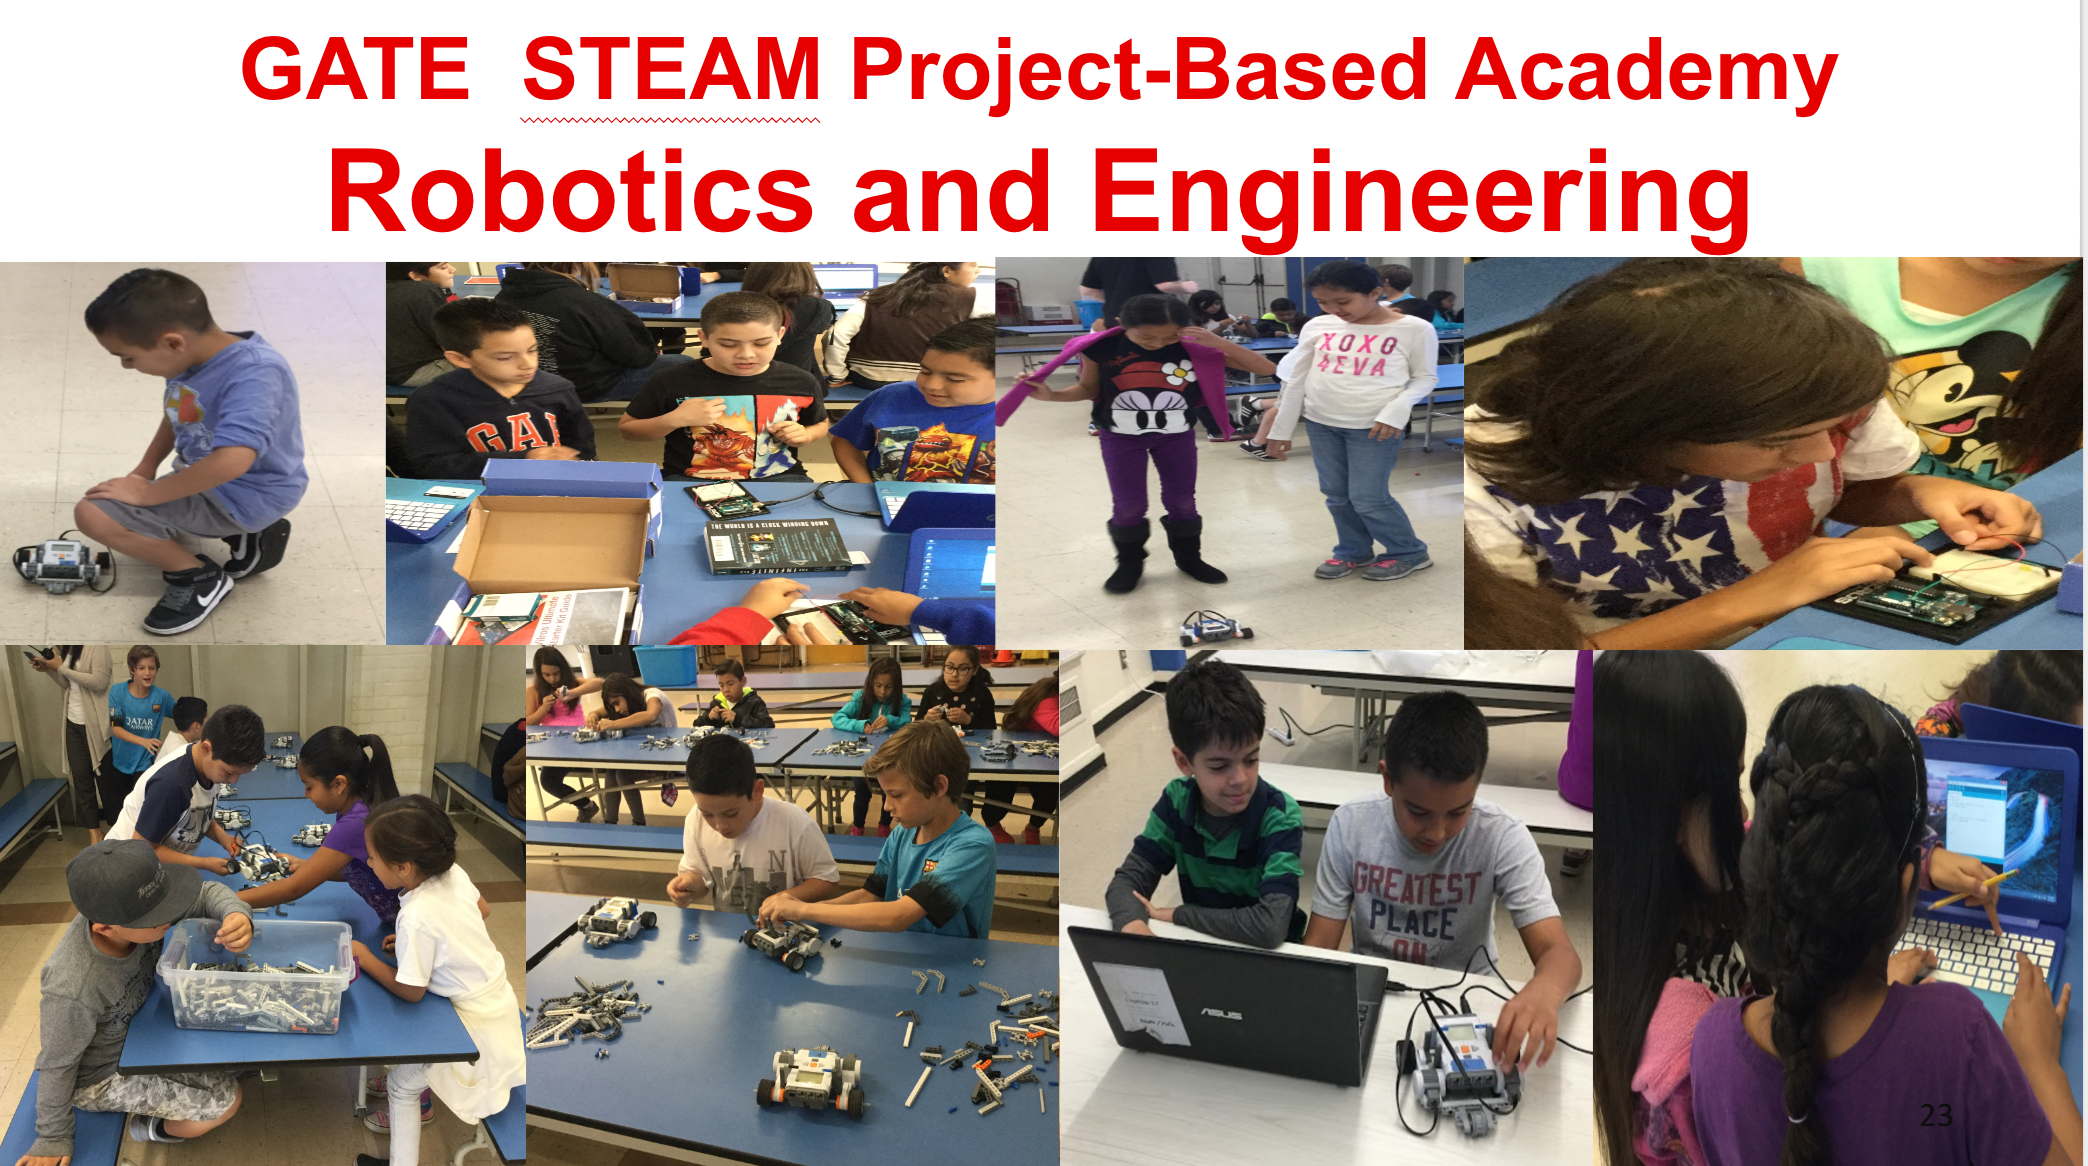 Project-based Academy showing robotics and engineering.